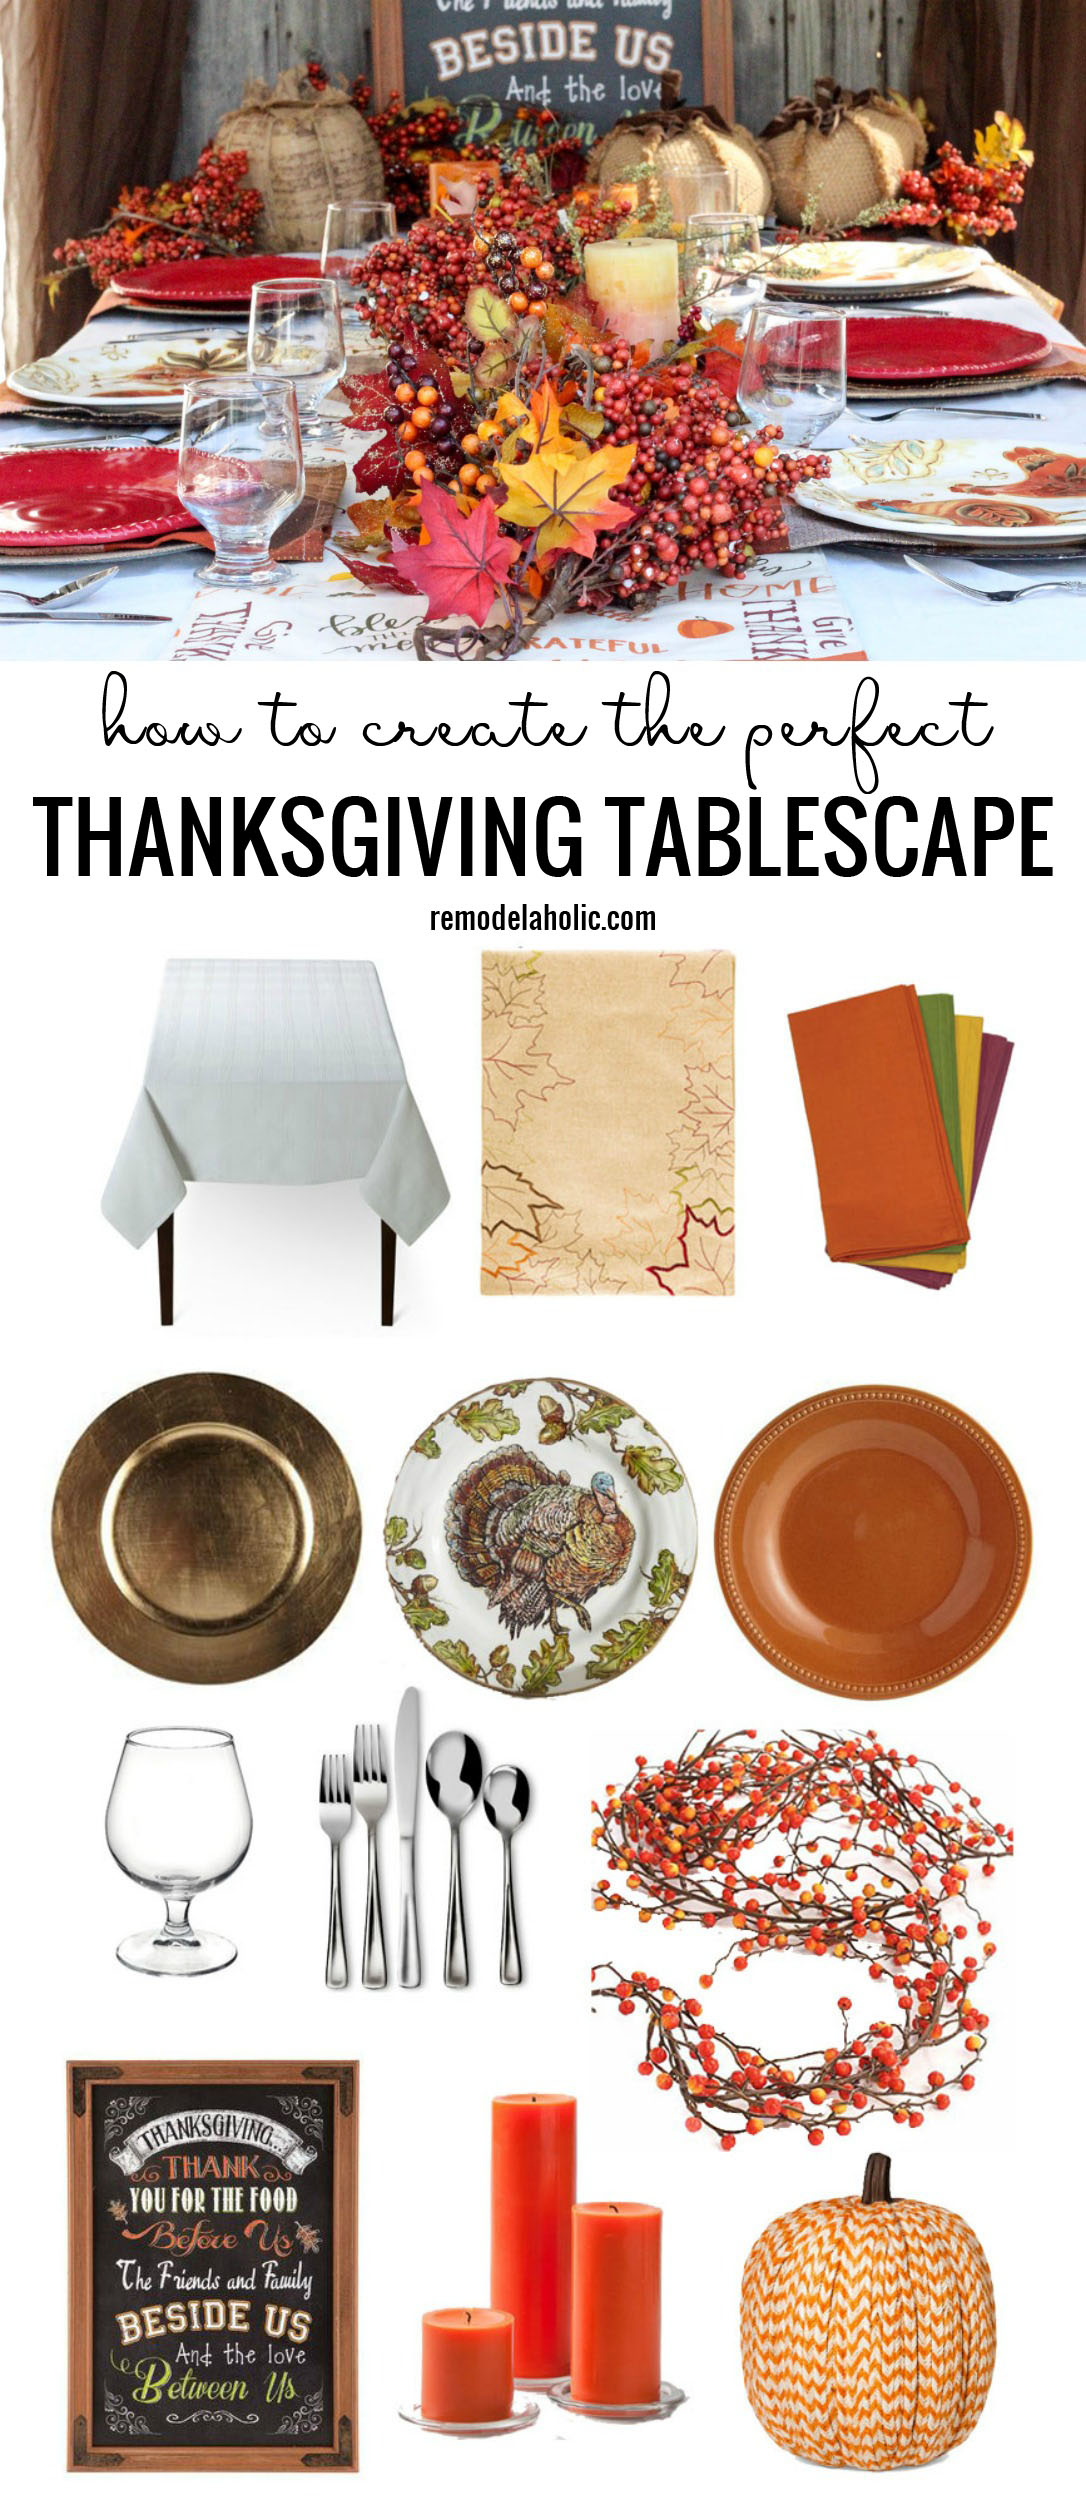 How To Create The Perfect Thanksgiving Tablescape Remodelaholic